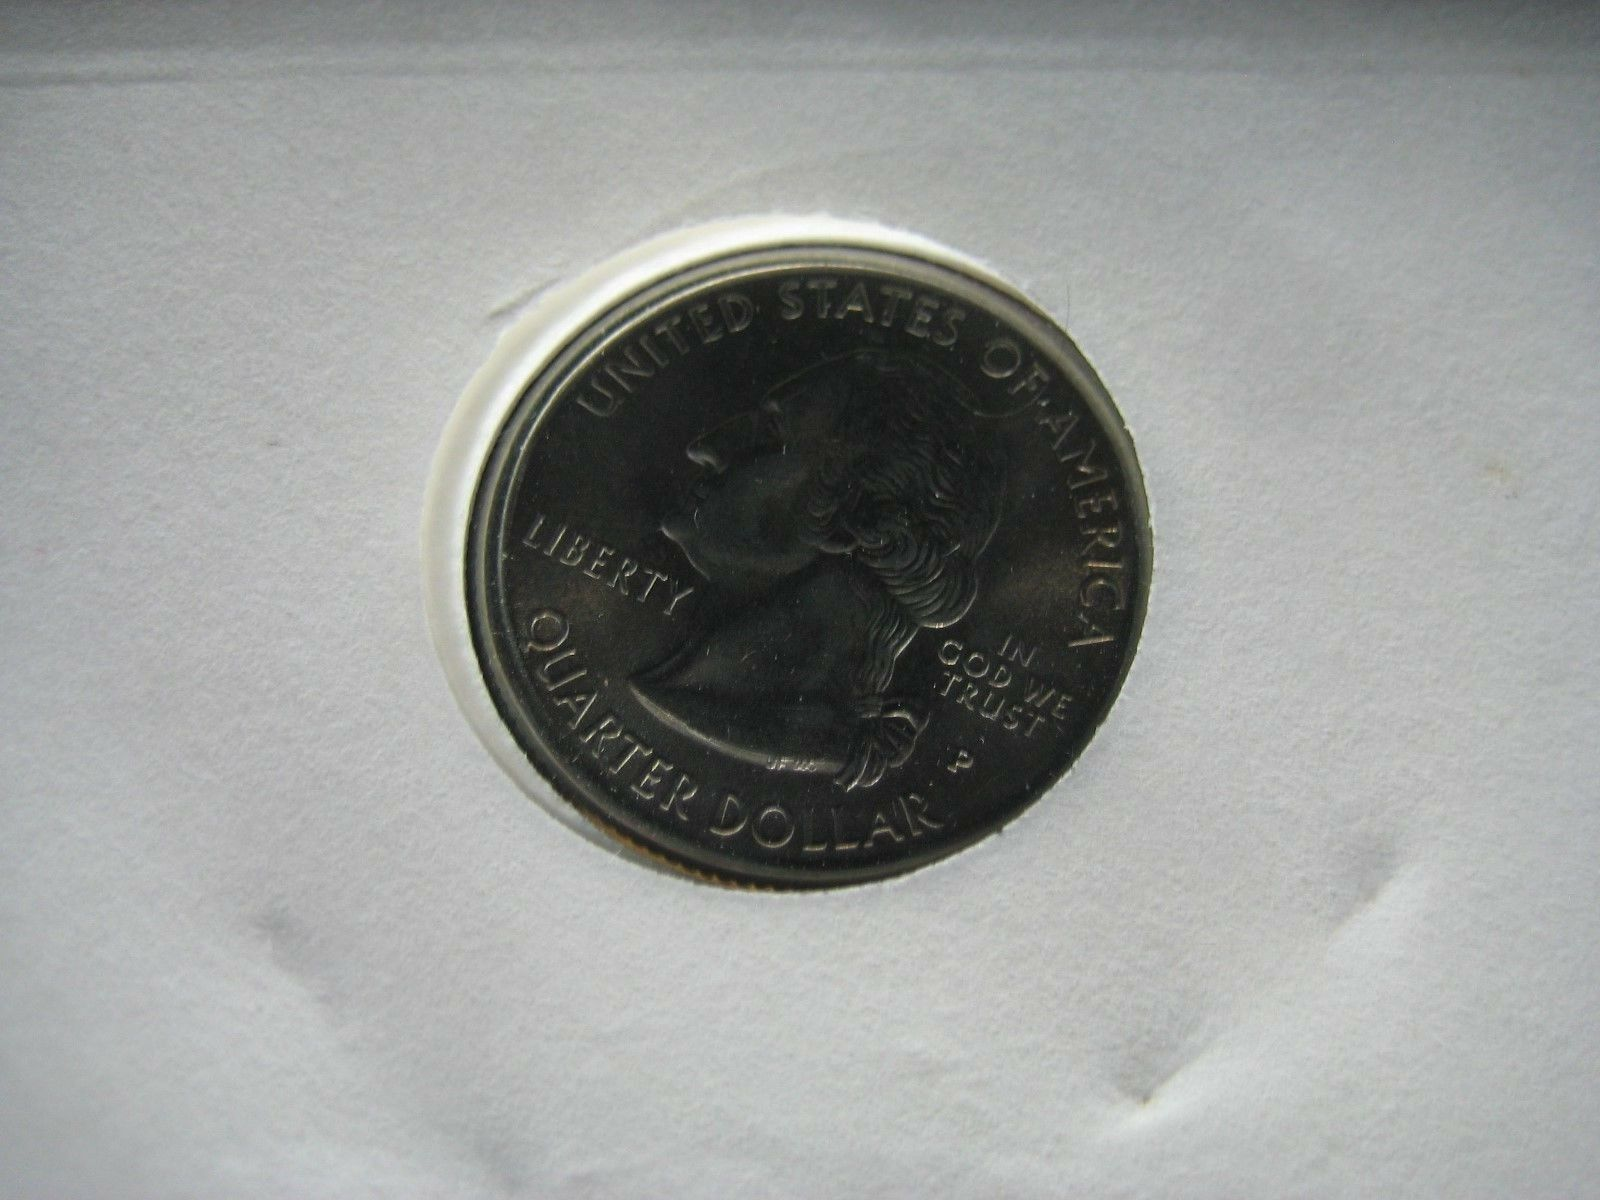 Pennsylvania State First Day Of Issue Commemorative Quarter Unc & 4 Cent Stamp